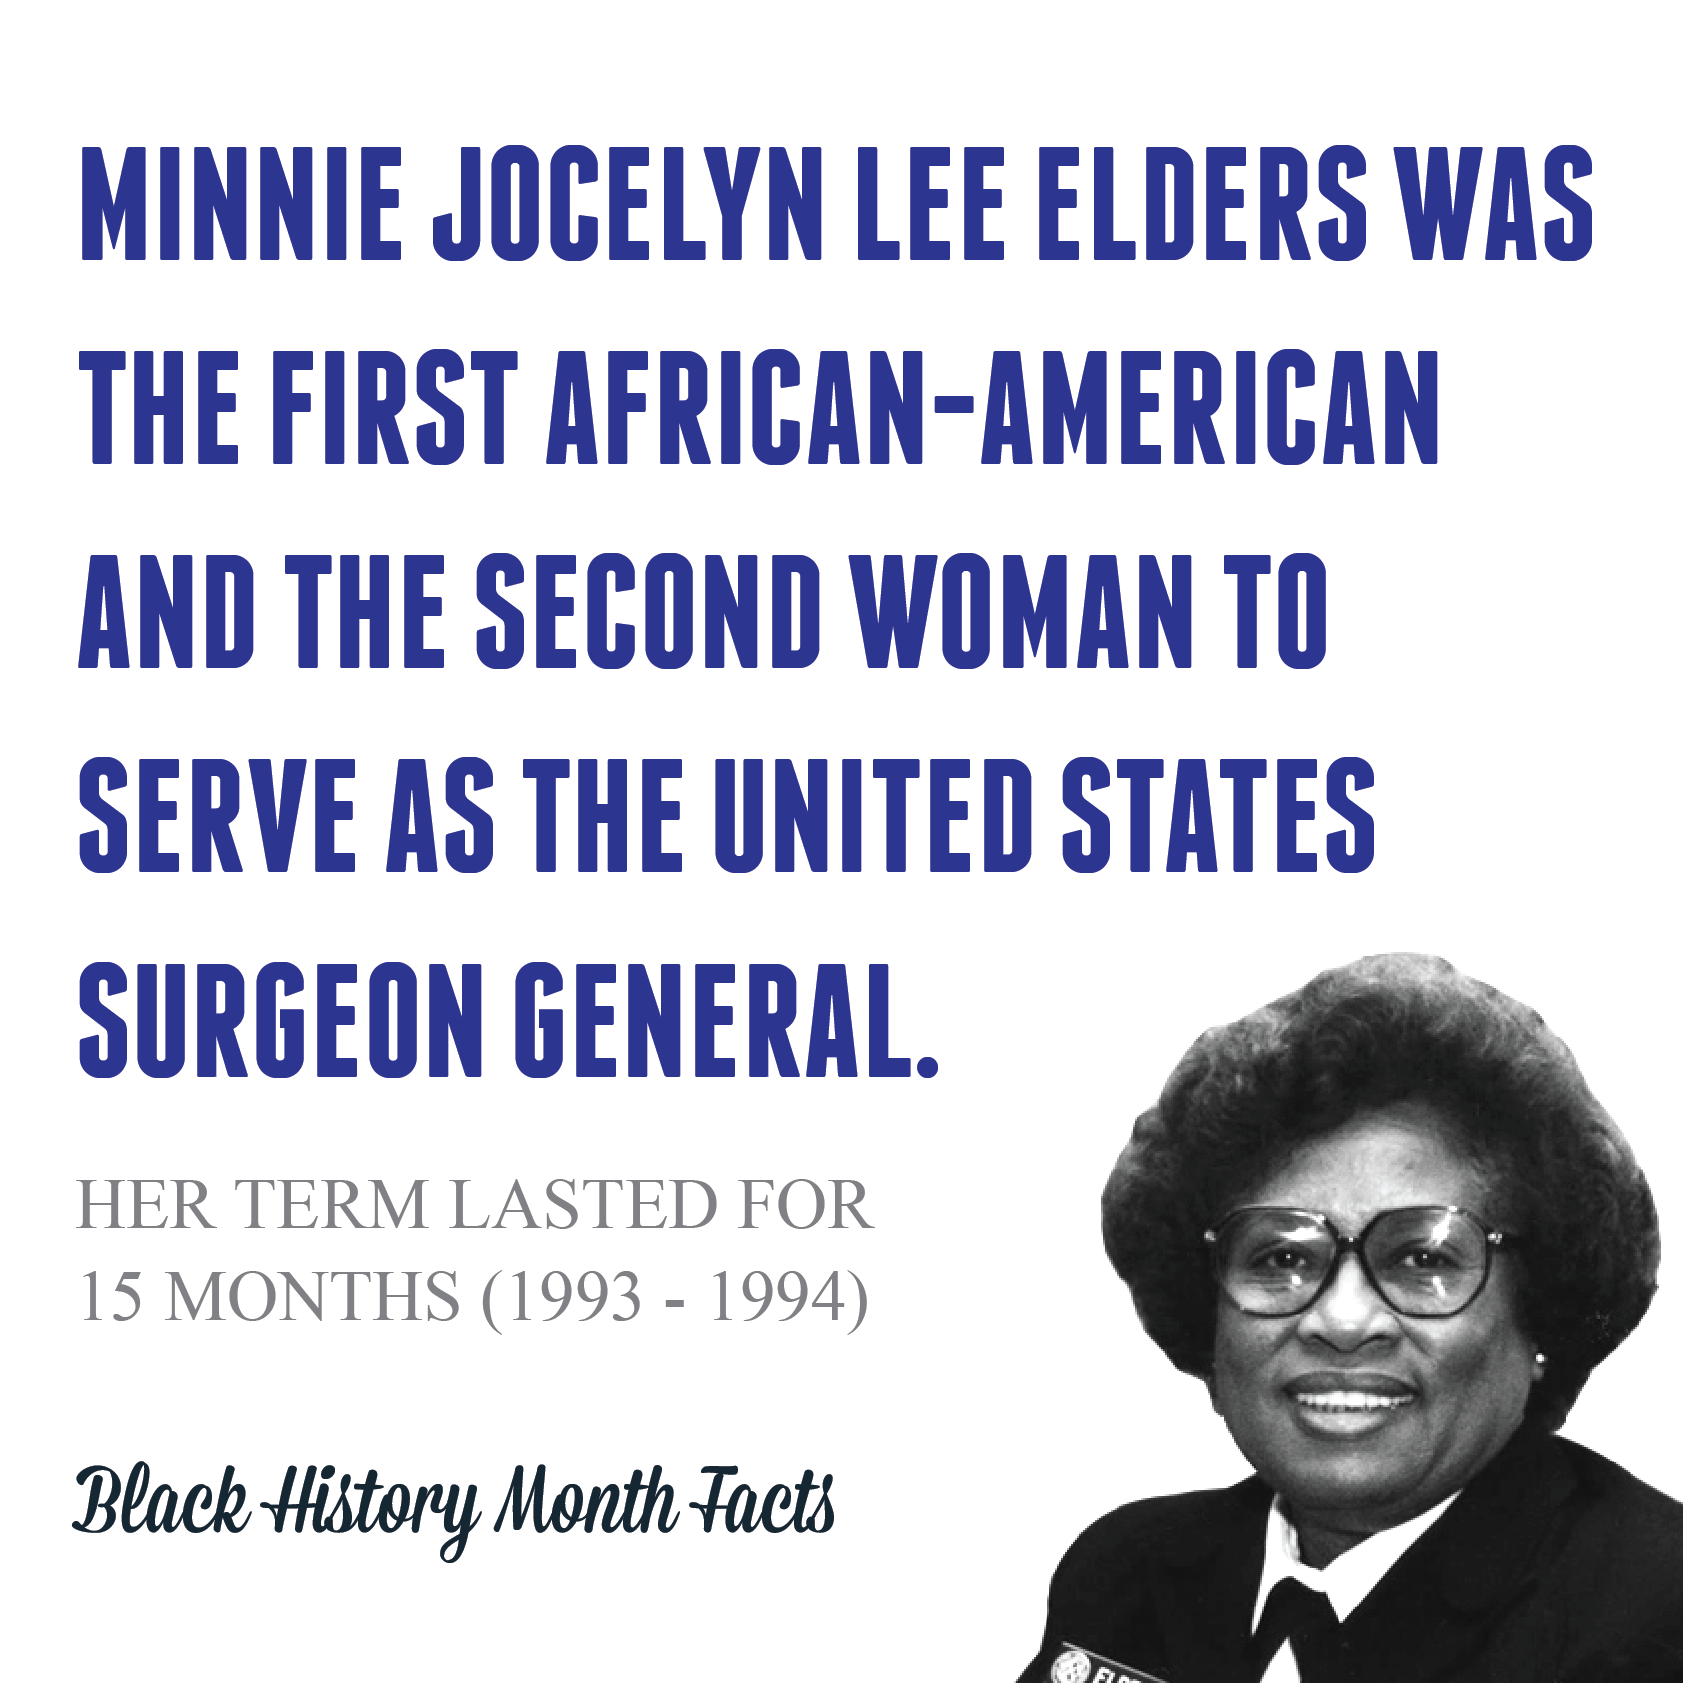 Black History Month Facts Woman